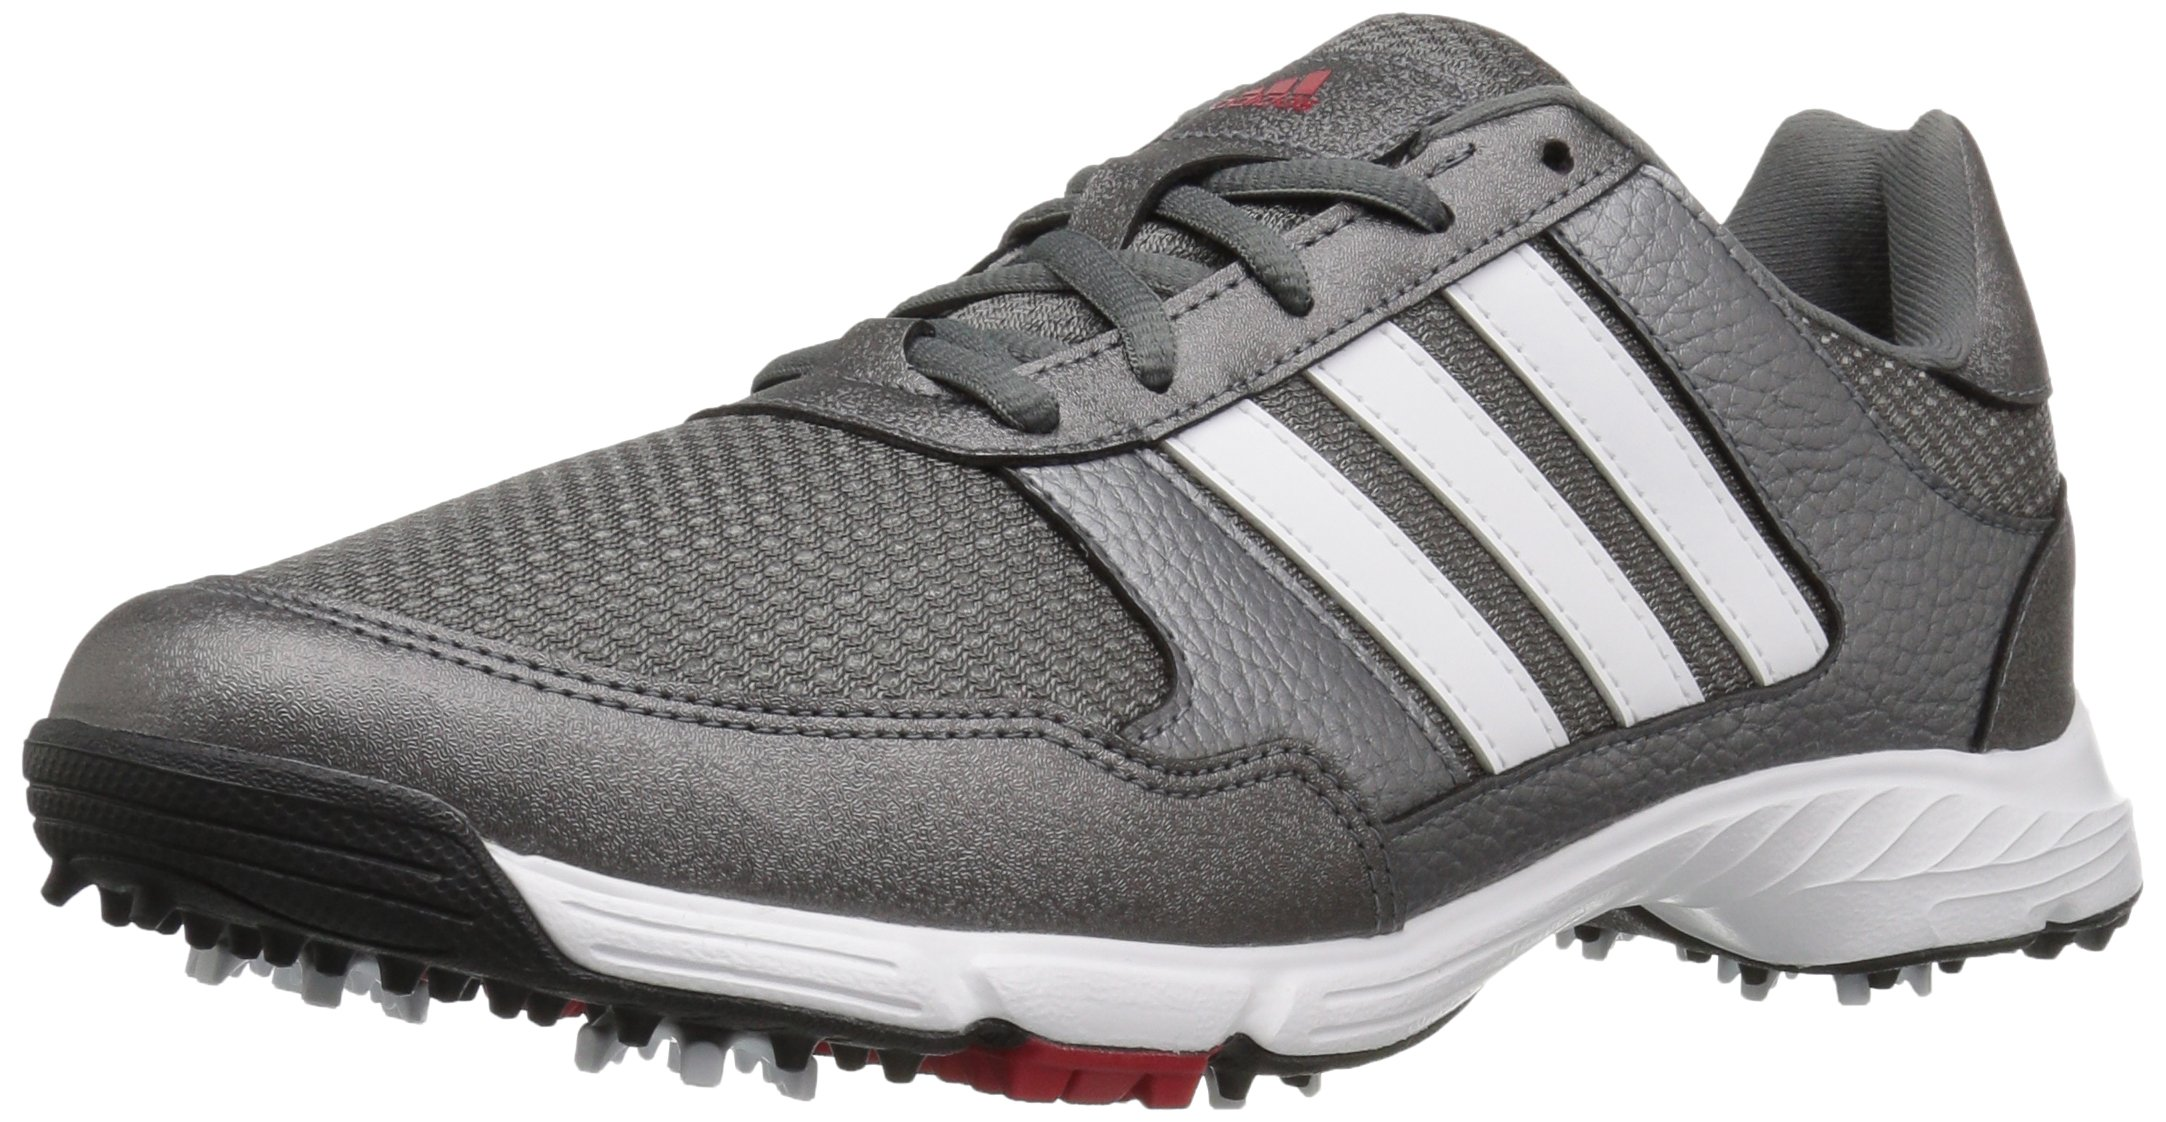 adidas Men's Tech Response Golf Shoe, Iron Metallic/White, 9 W US by adidas